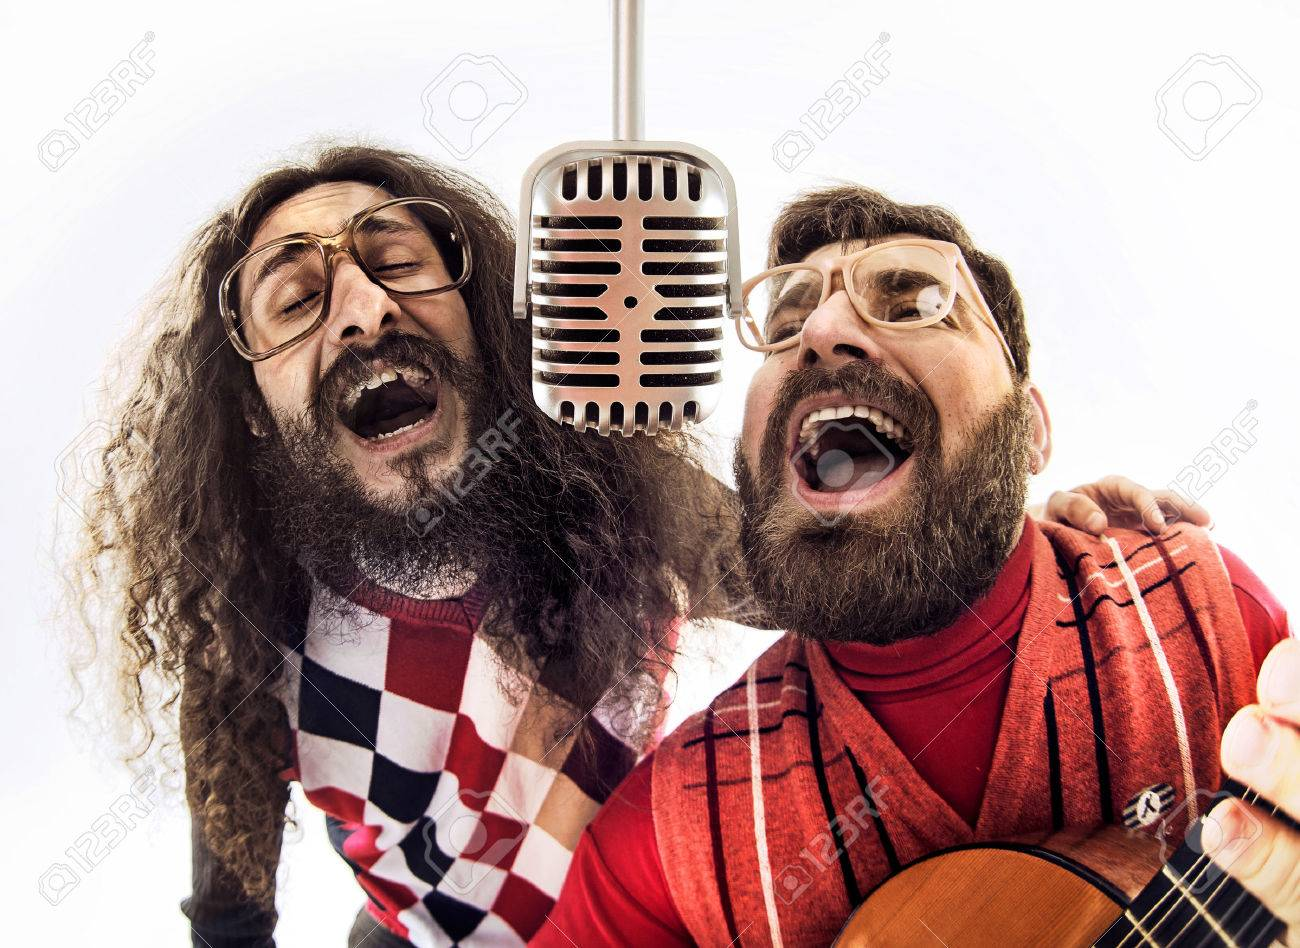 Two nerdy boys singing together Archivio Fotografico - 53128987